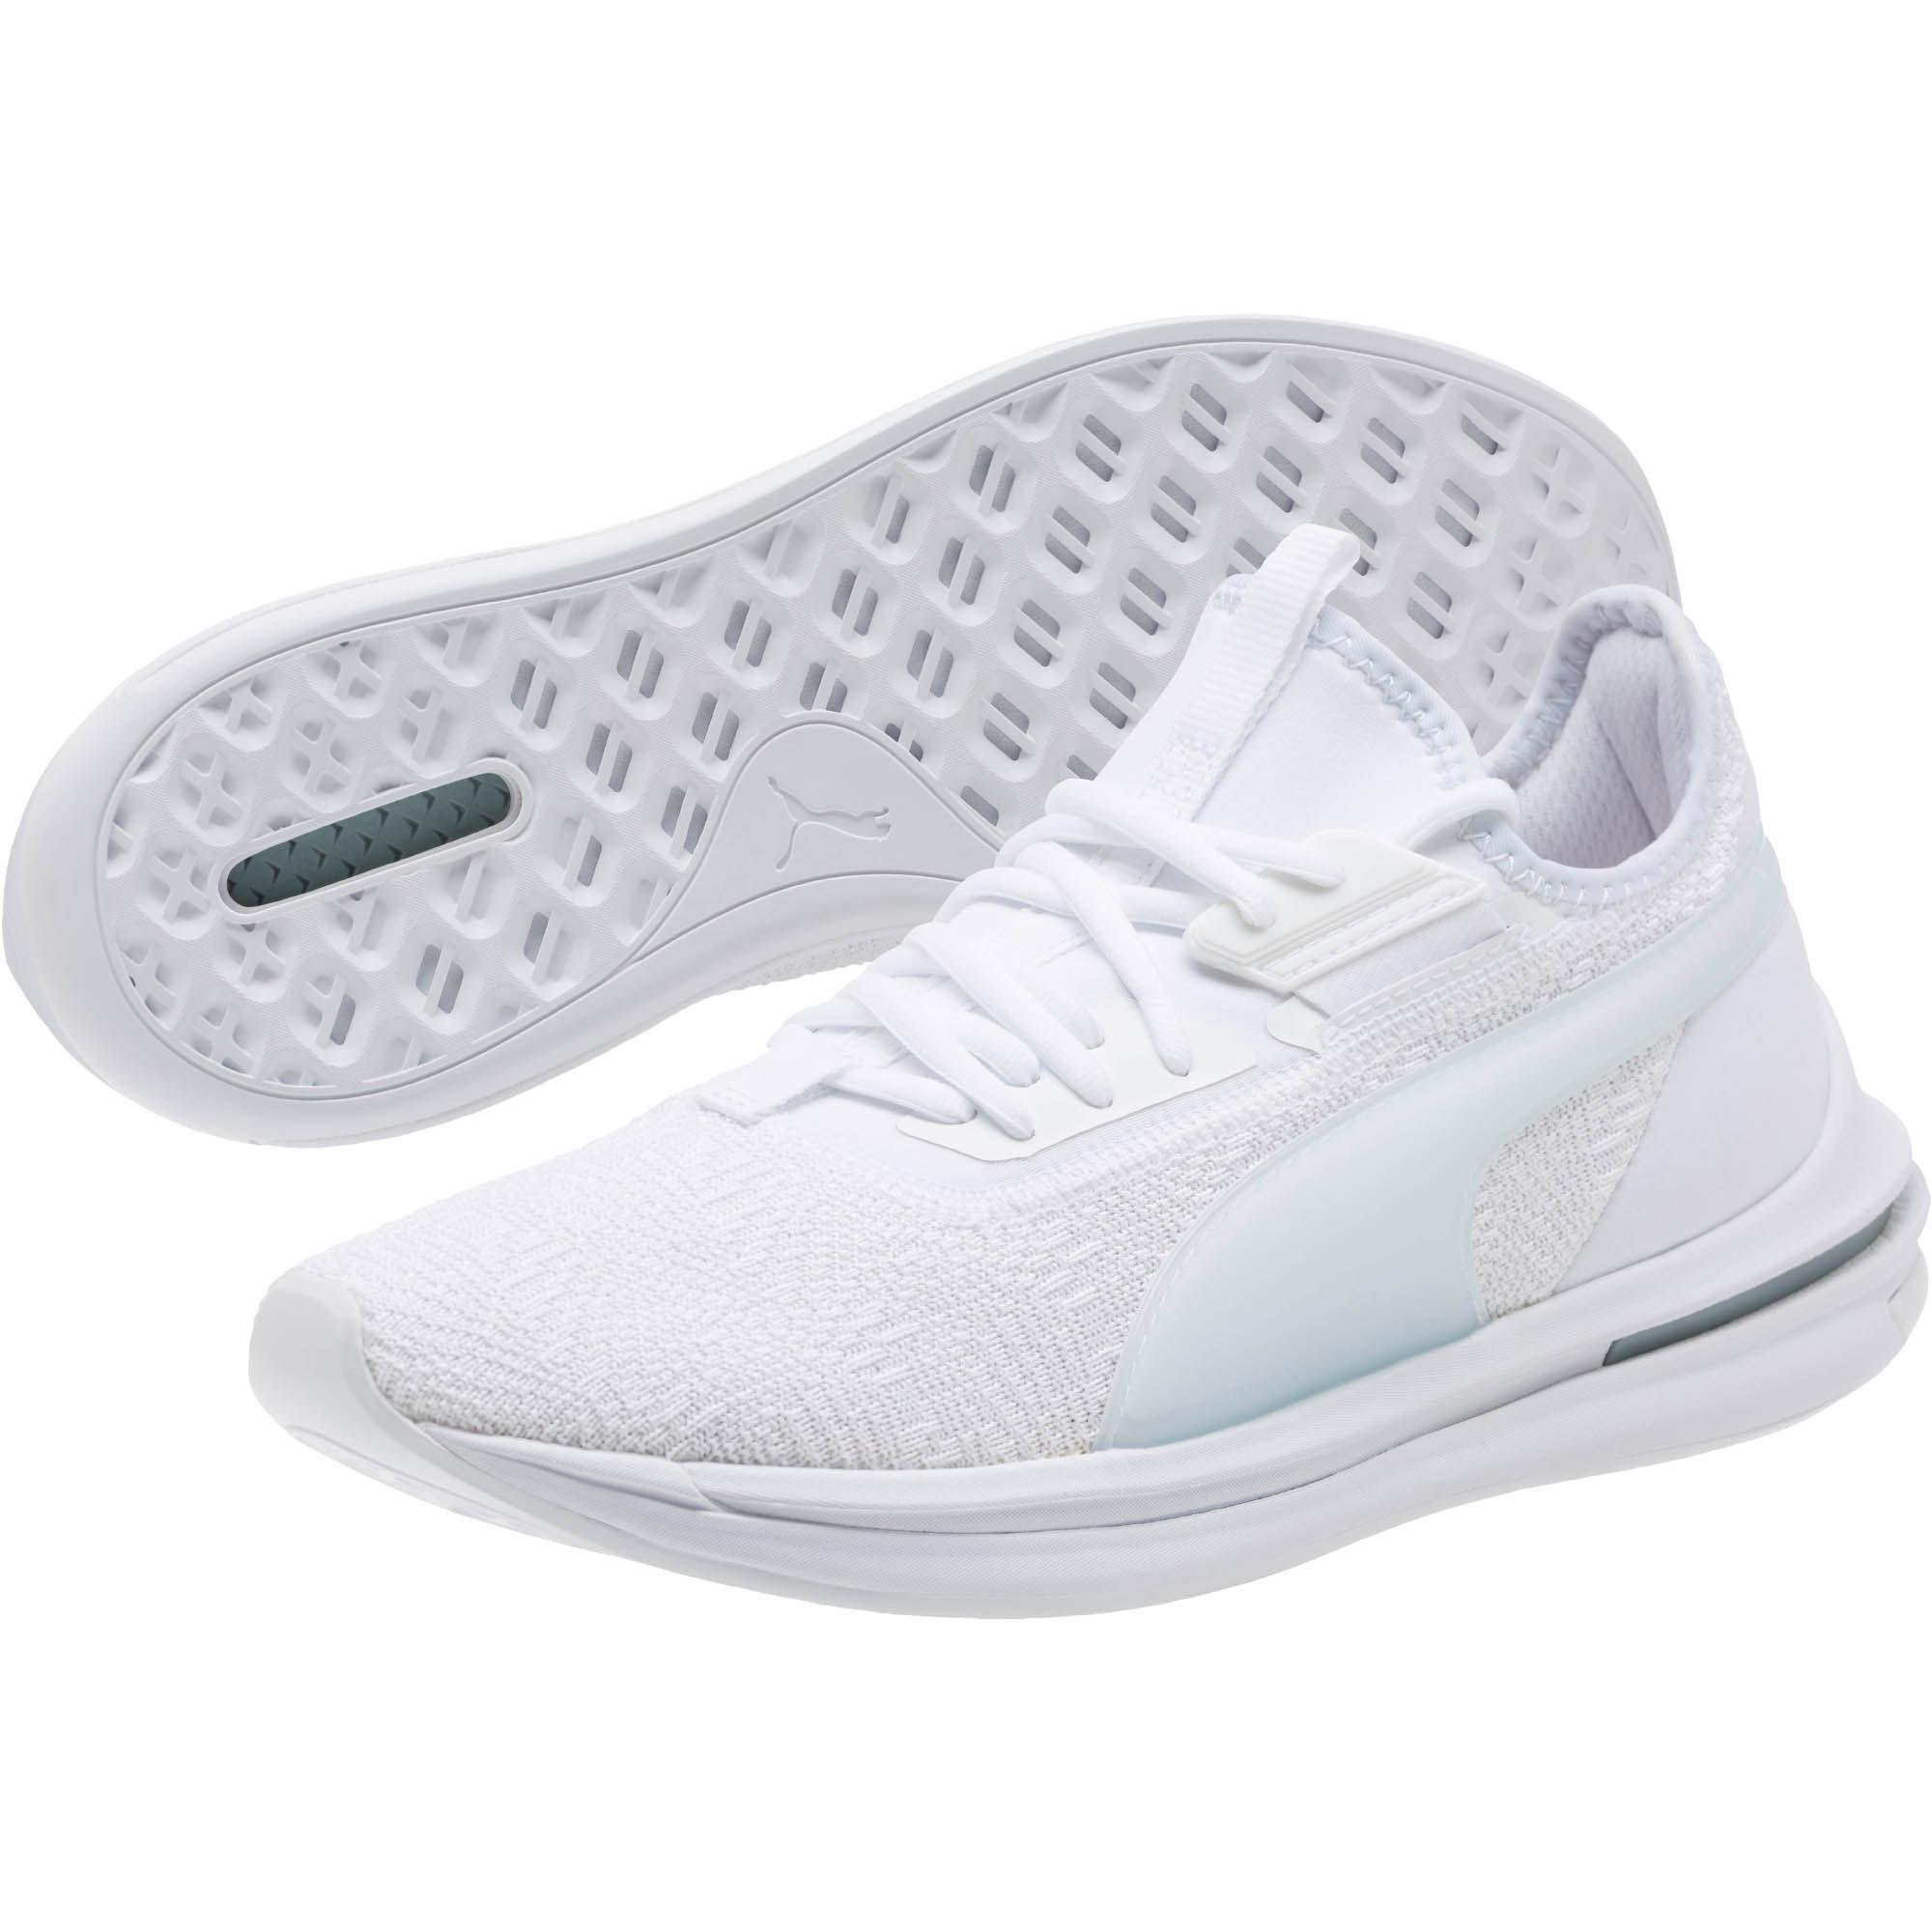 PUMA - White Ignite Limitless Sr-71 Running Shoes for Men - Lyst. View  fullscreen 14e34de7b